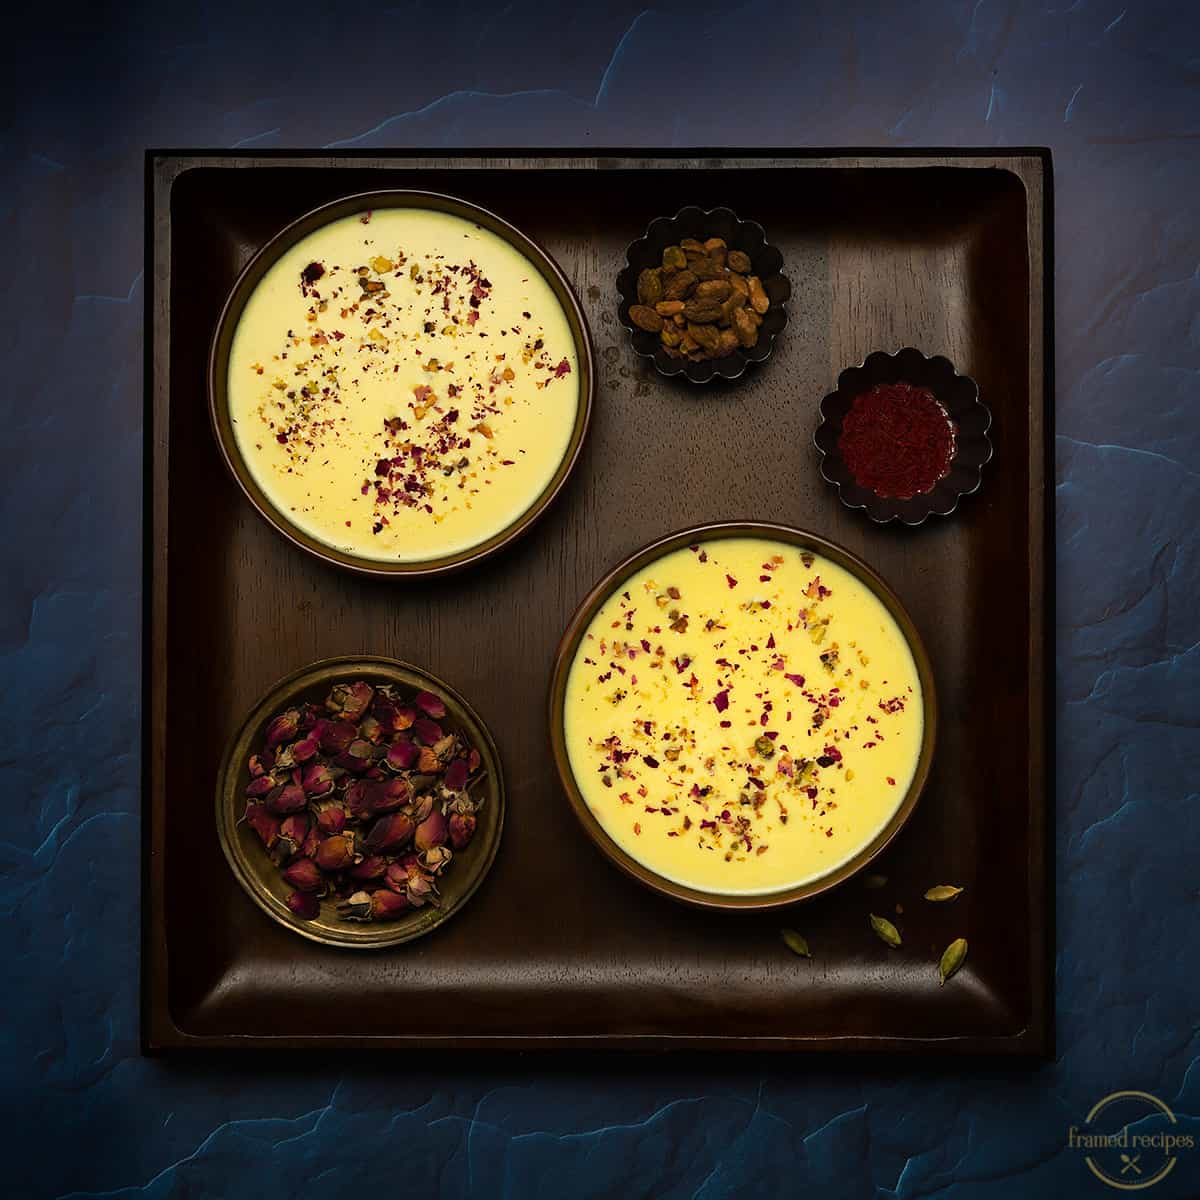 tapioca pear pudding or sabudana kheer garnished with pistachios and rose petals.